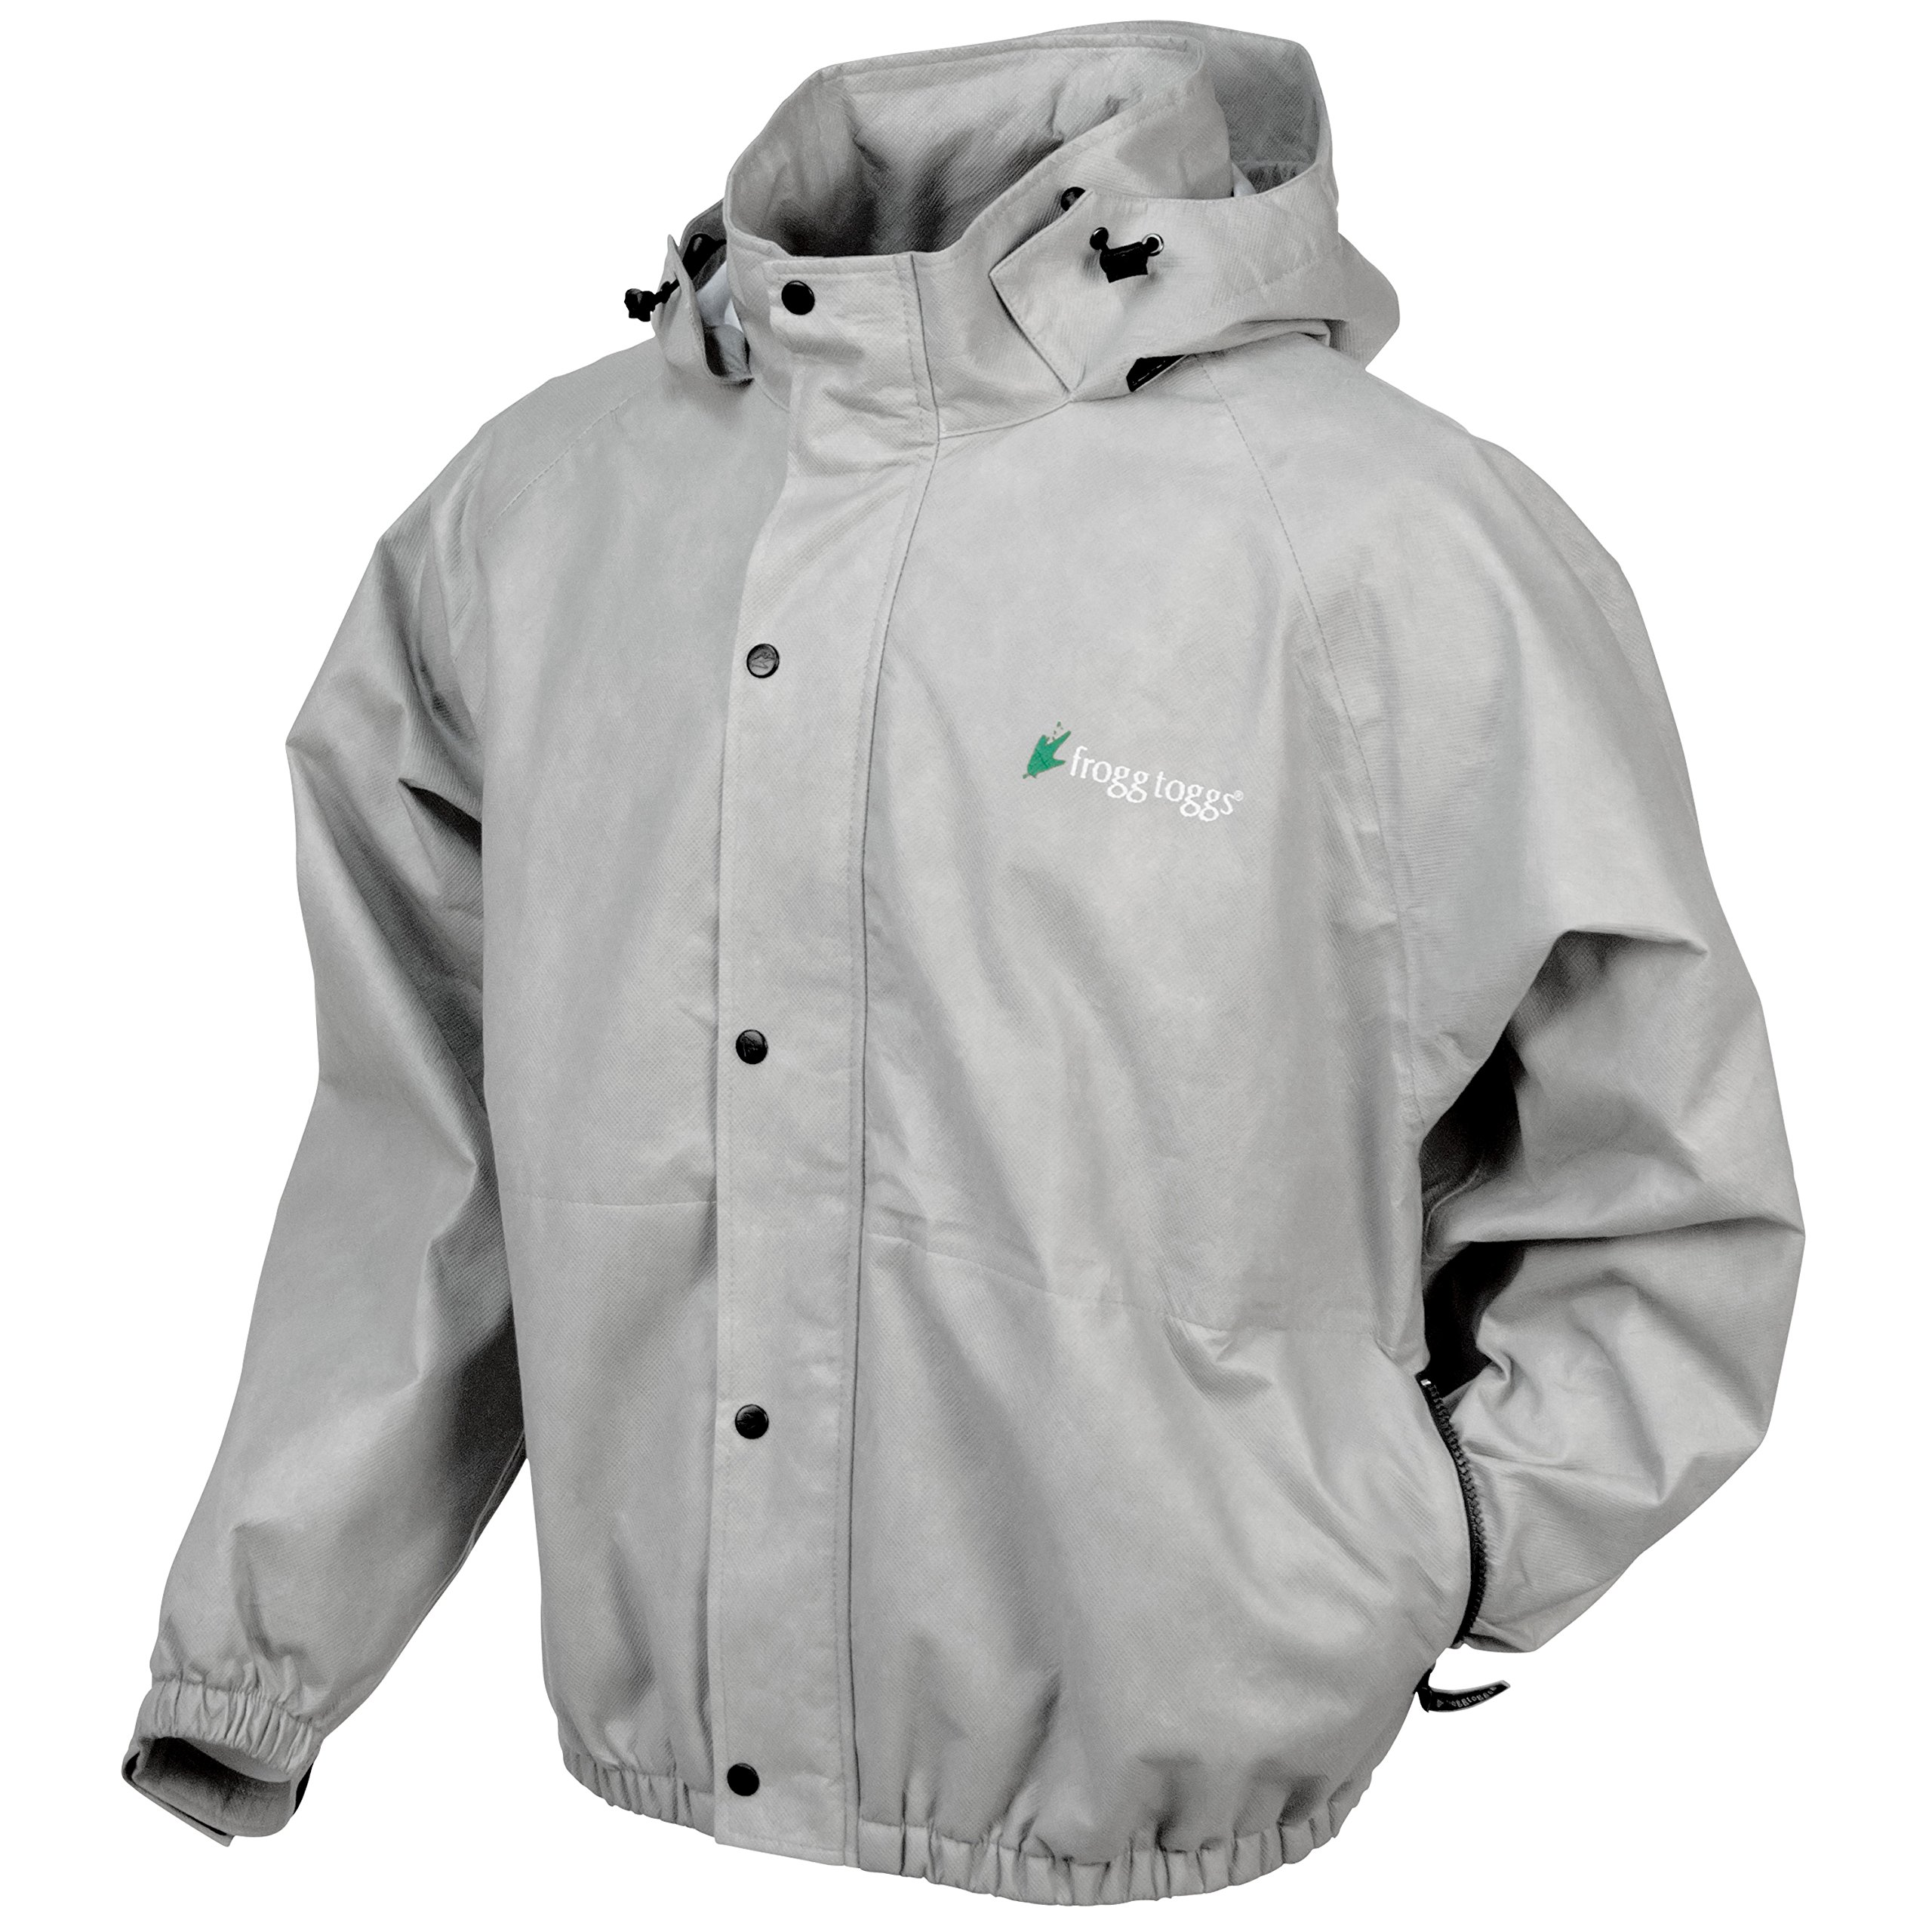 Frogg Toggs Classic Pro Action Jacket with Pockets, Cloud Grey, Size Small